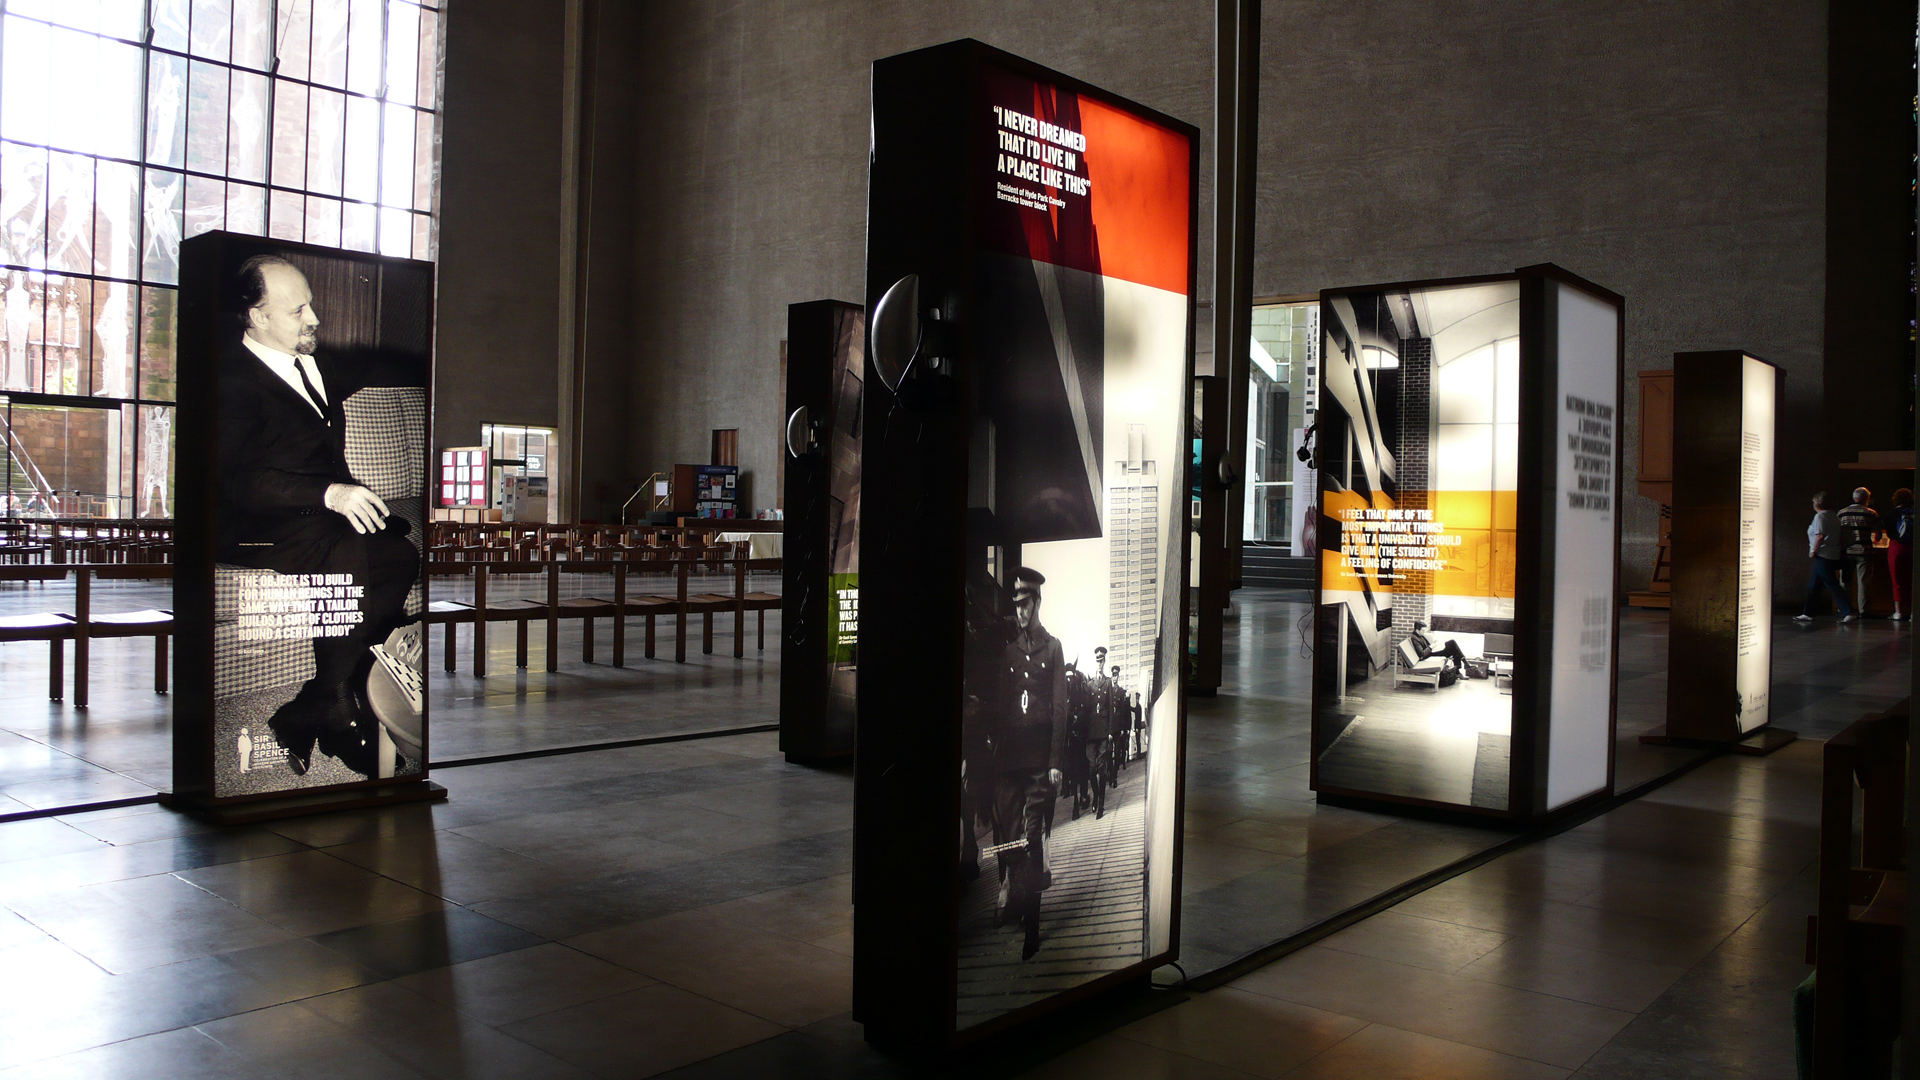 Sir Basil Spence, Travelling Exhibition